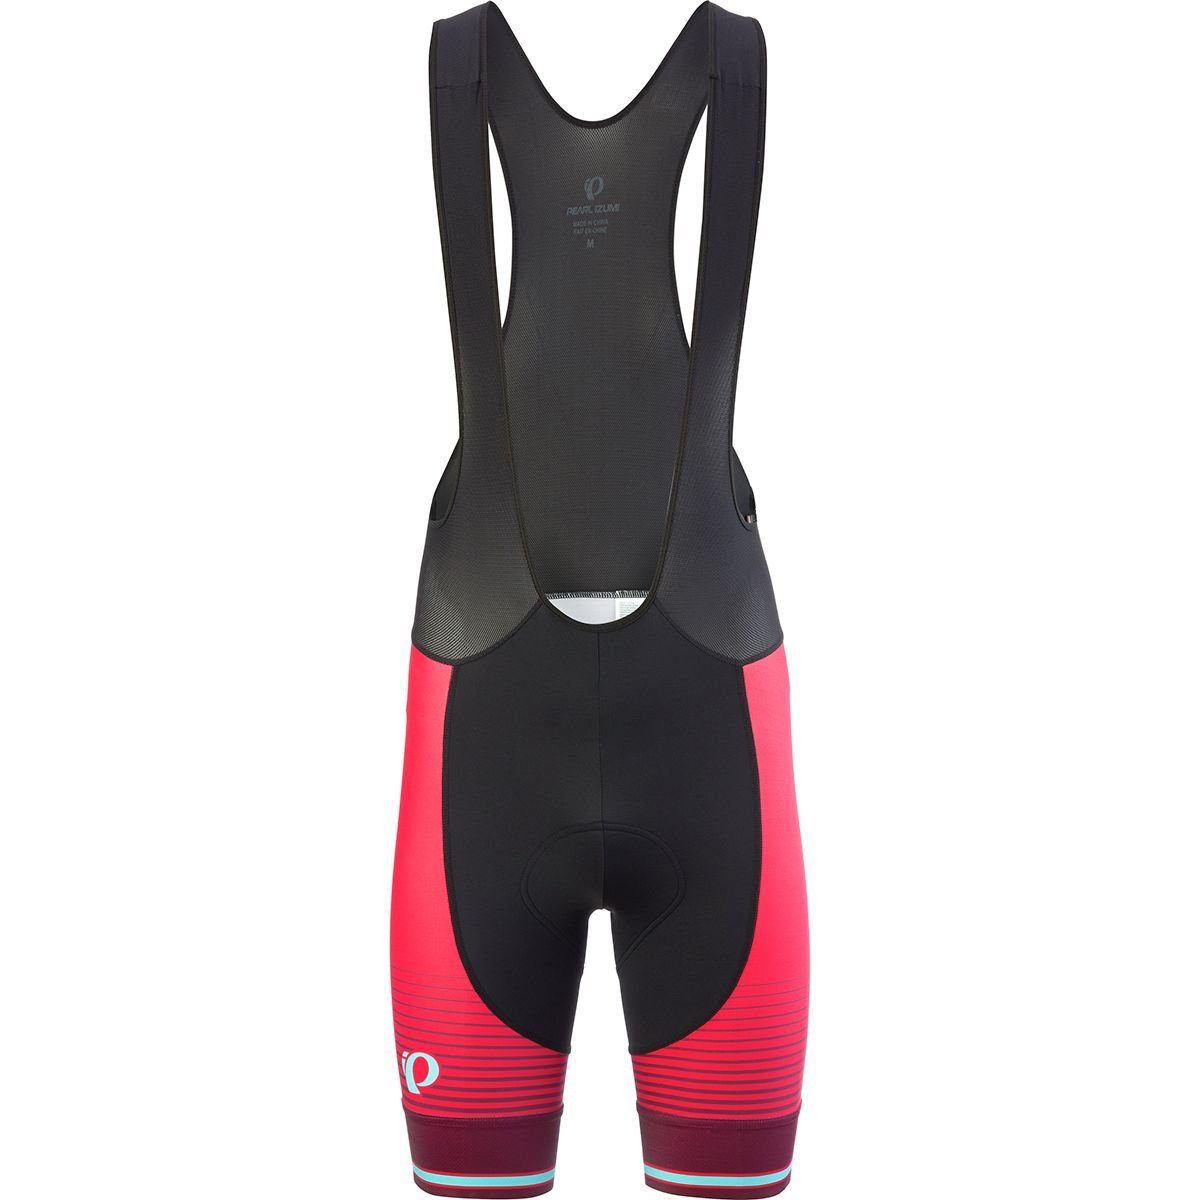 Pearl iZUMi Elite Purs Graphic Bib Shorts, Black/Rogue Red Diffuse, Medium